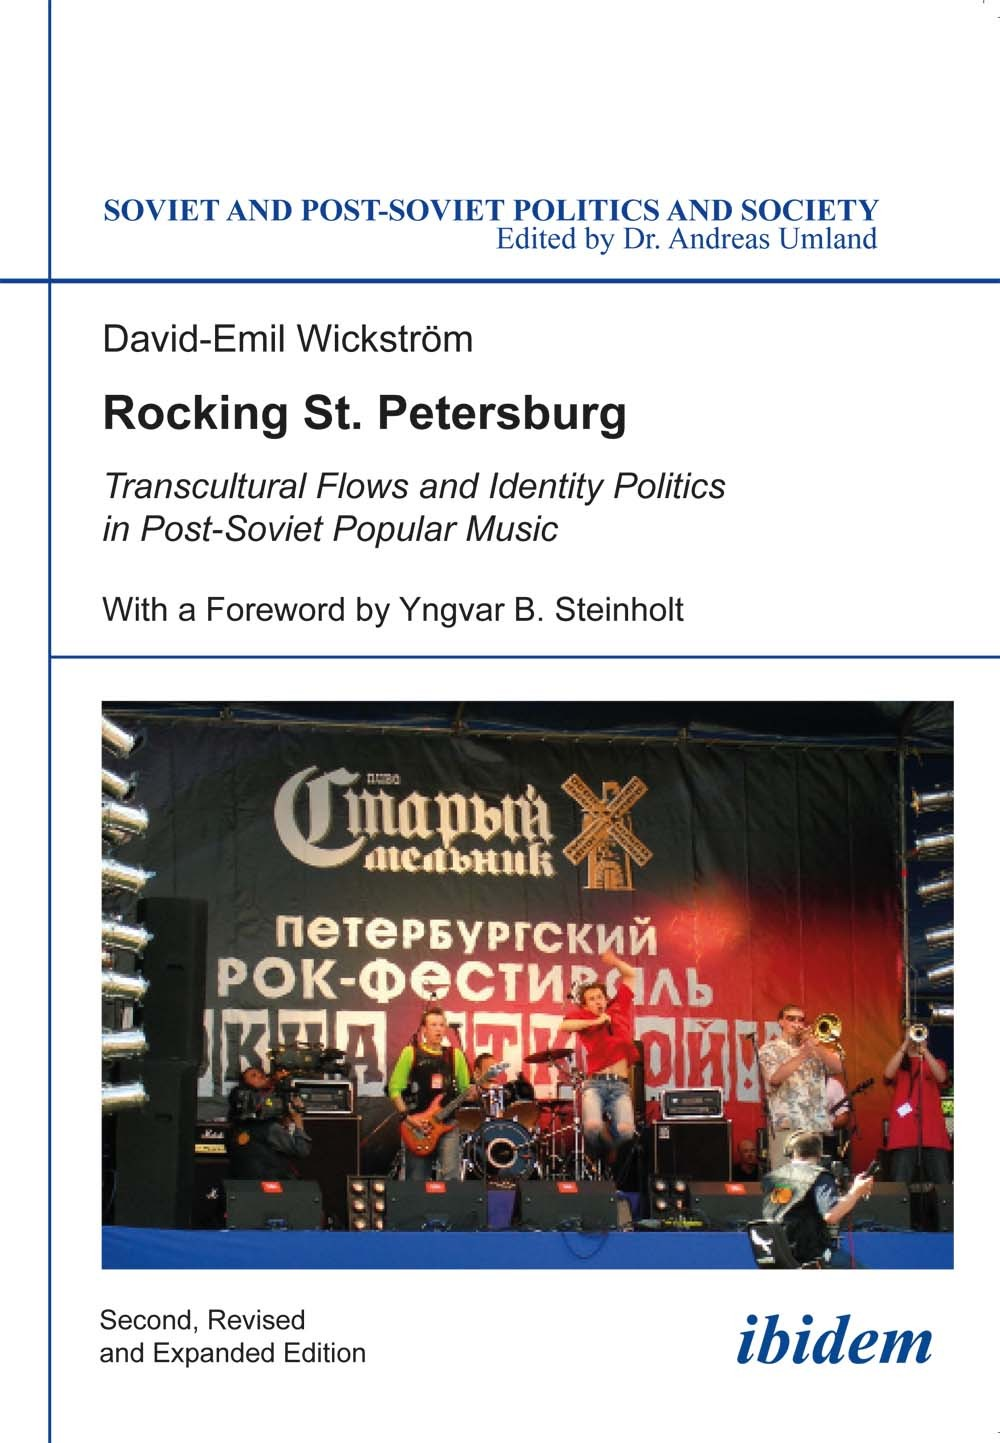 Rocking St. Petersburg - Transcultural Flows and Identity Politics in Post-Soviet Popular Music